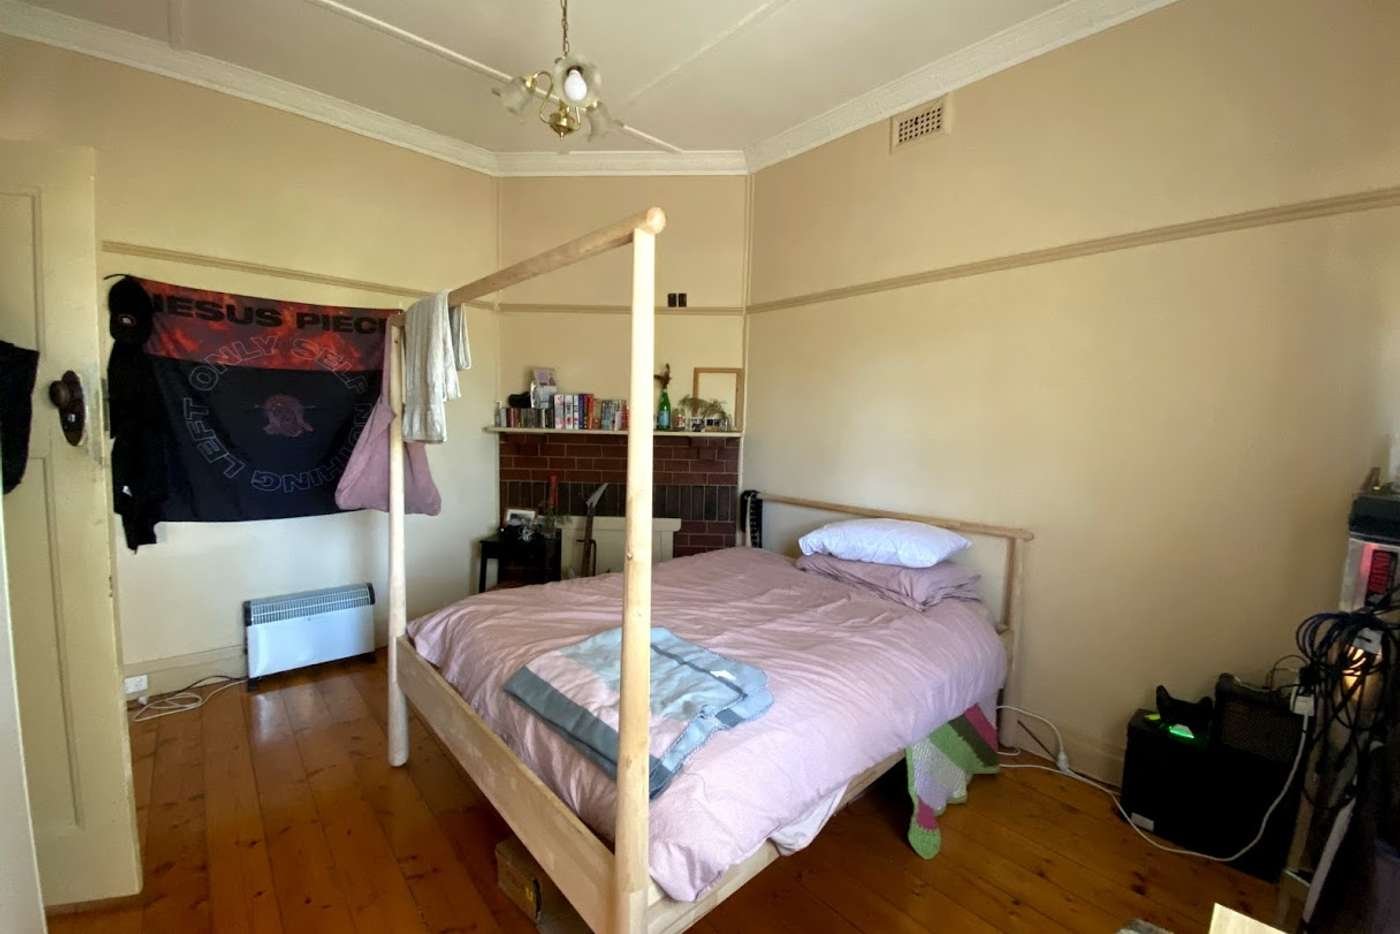 Seventh view of Homely house listing, 16 View Street, West Footscray VIC 3012